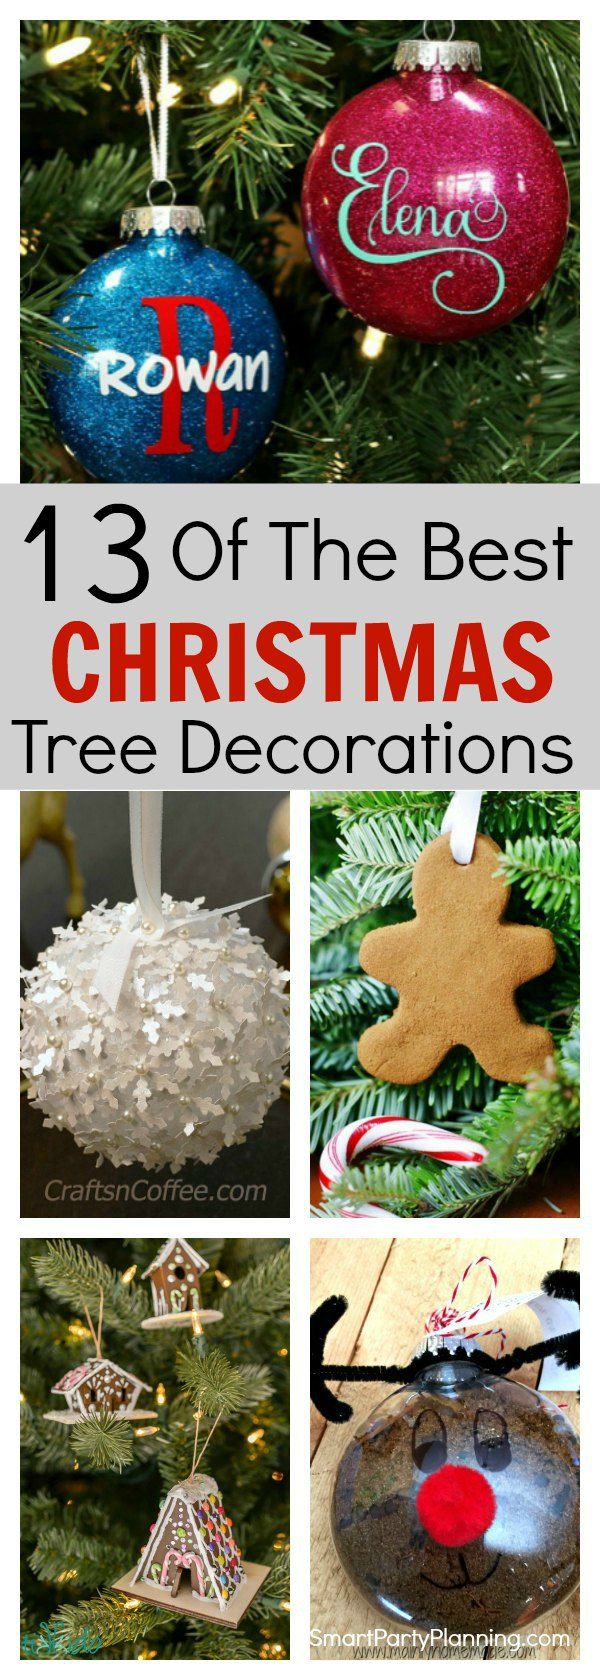 """13 of the best Christmas Tree Decorations"""" width='""""600""""' height='""""1680""""' data-pin-description=""""Why not try your hand at a bit of DIY and create your own Christmas tree decorations this year. This selection is all easy and fun to make, they and are great for kids to get involved in. They will make a fantastic holiday activity which you can enjoy year after year. With different themes to try, there is something that everyone will love."""